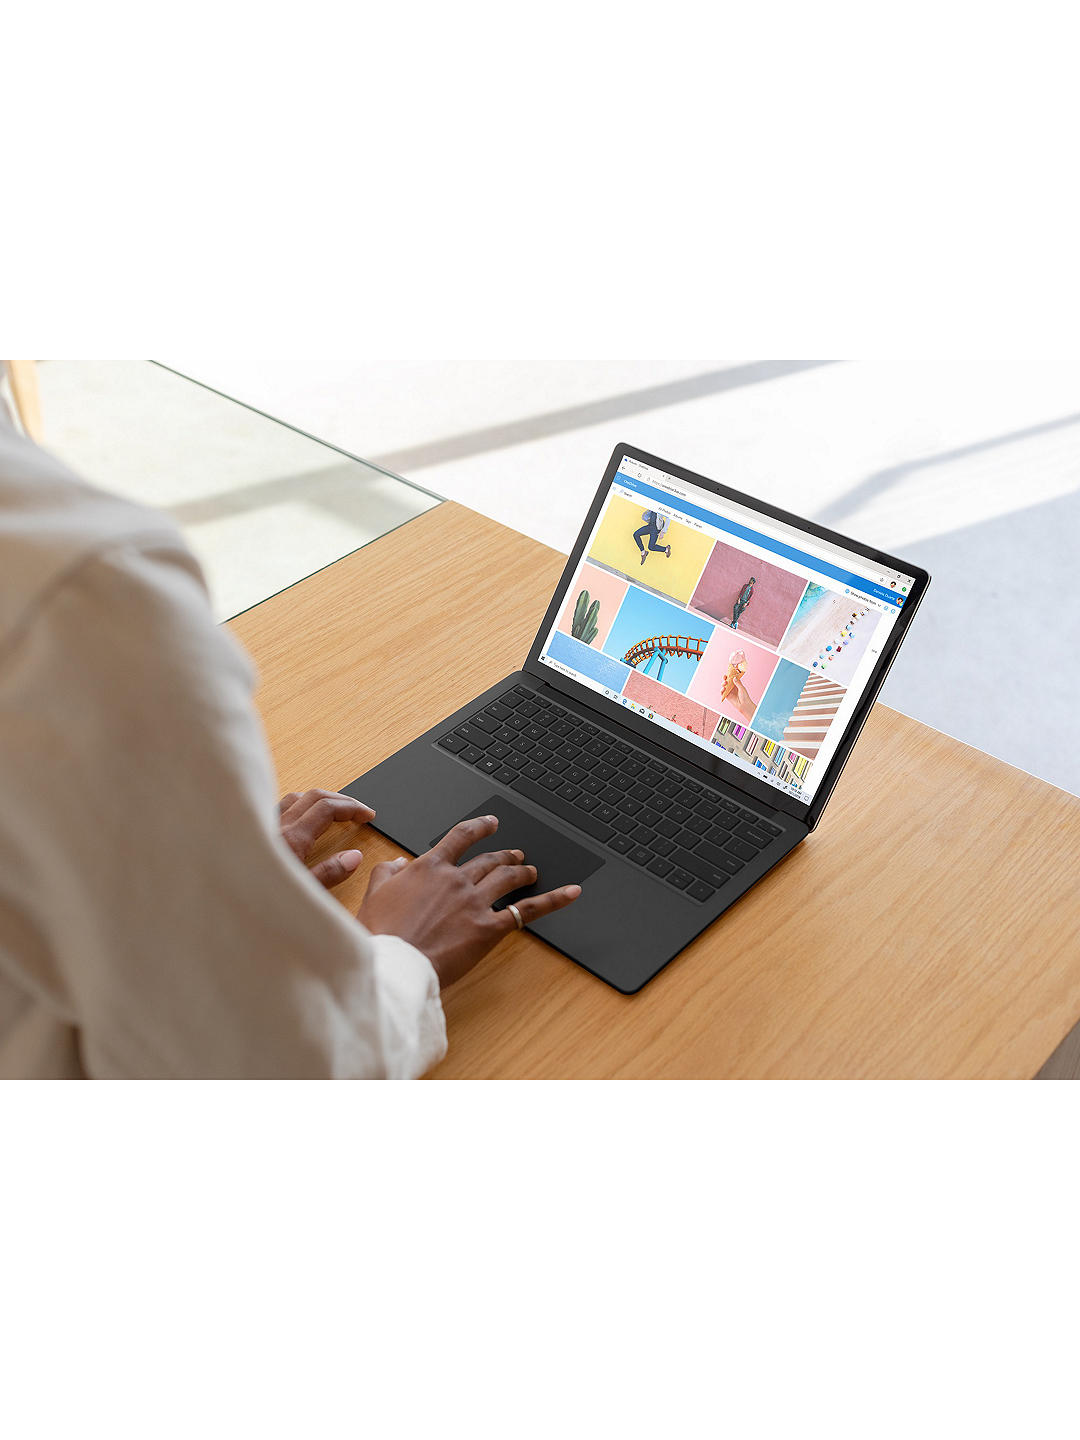 "Buy Microsoft Surface Laptop 3, Intel Core i7 Processor, 16GB RAM, 256GB SSD, 13.5"" PixelSense Display, Cobalt Blue Online at johnlewis.com"